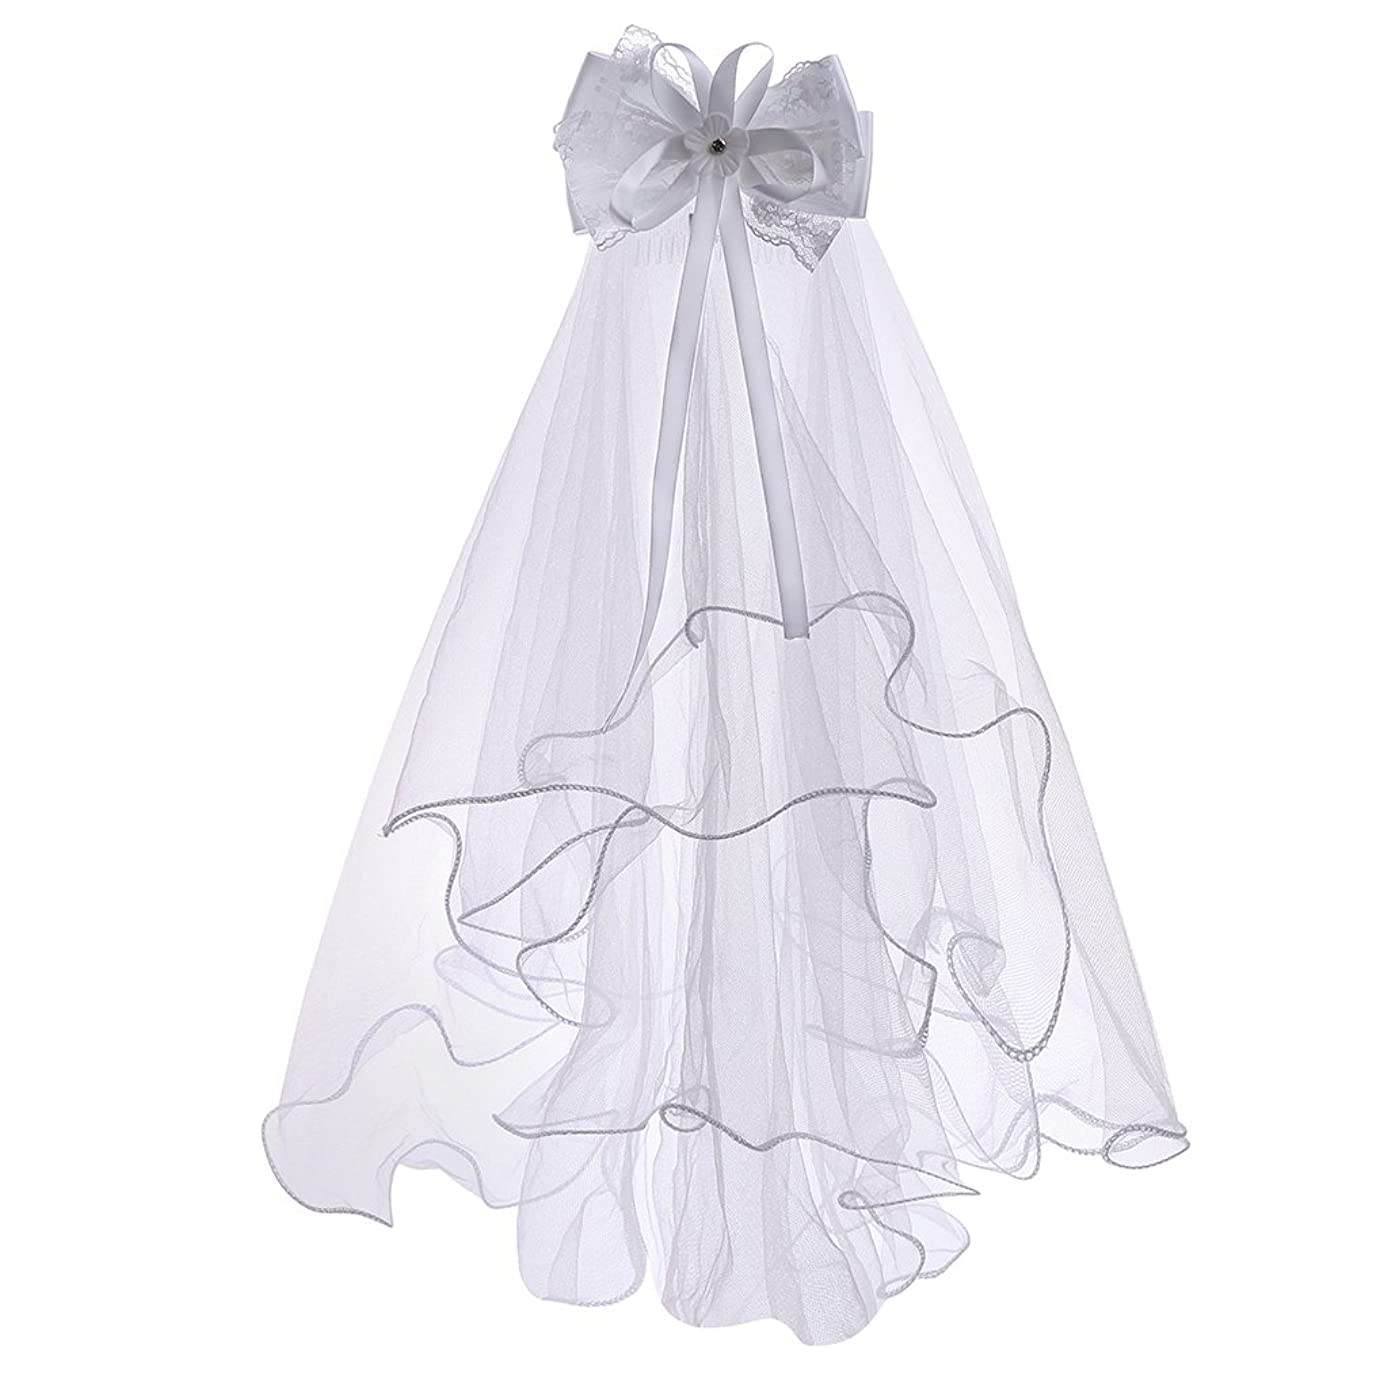 White Floral First Communion Veils for Girls